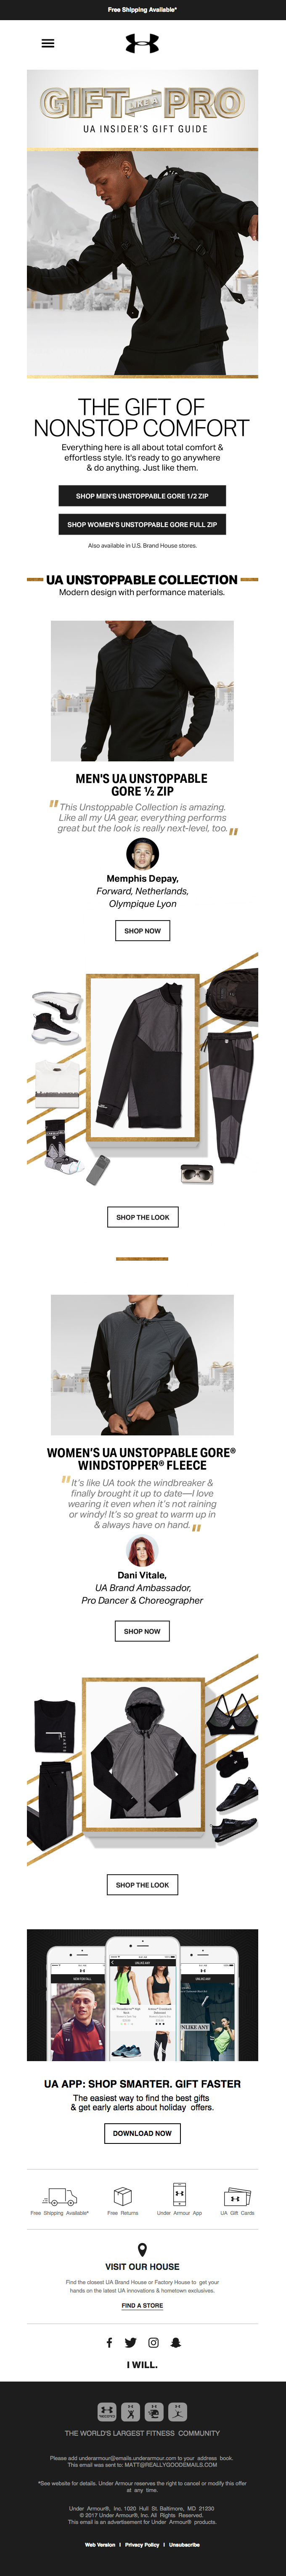 under armour email